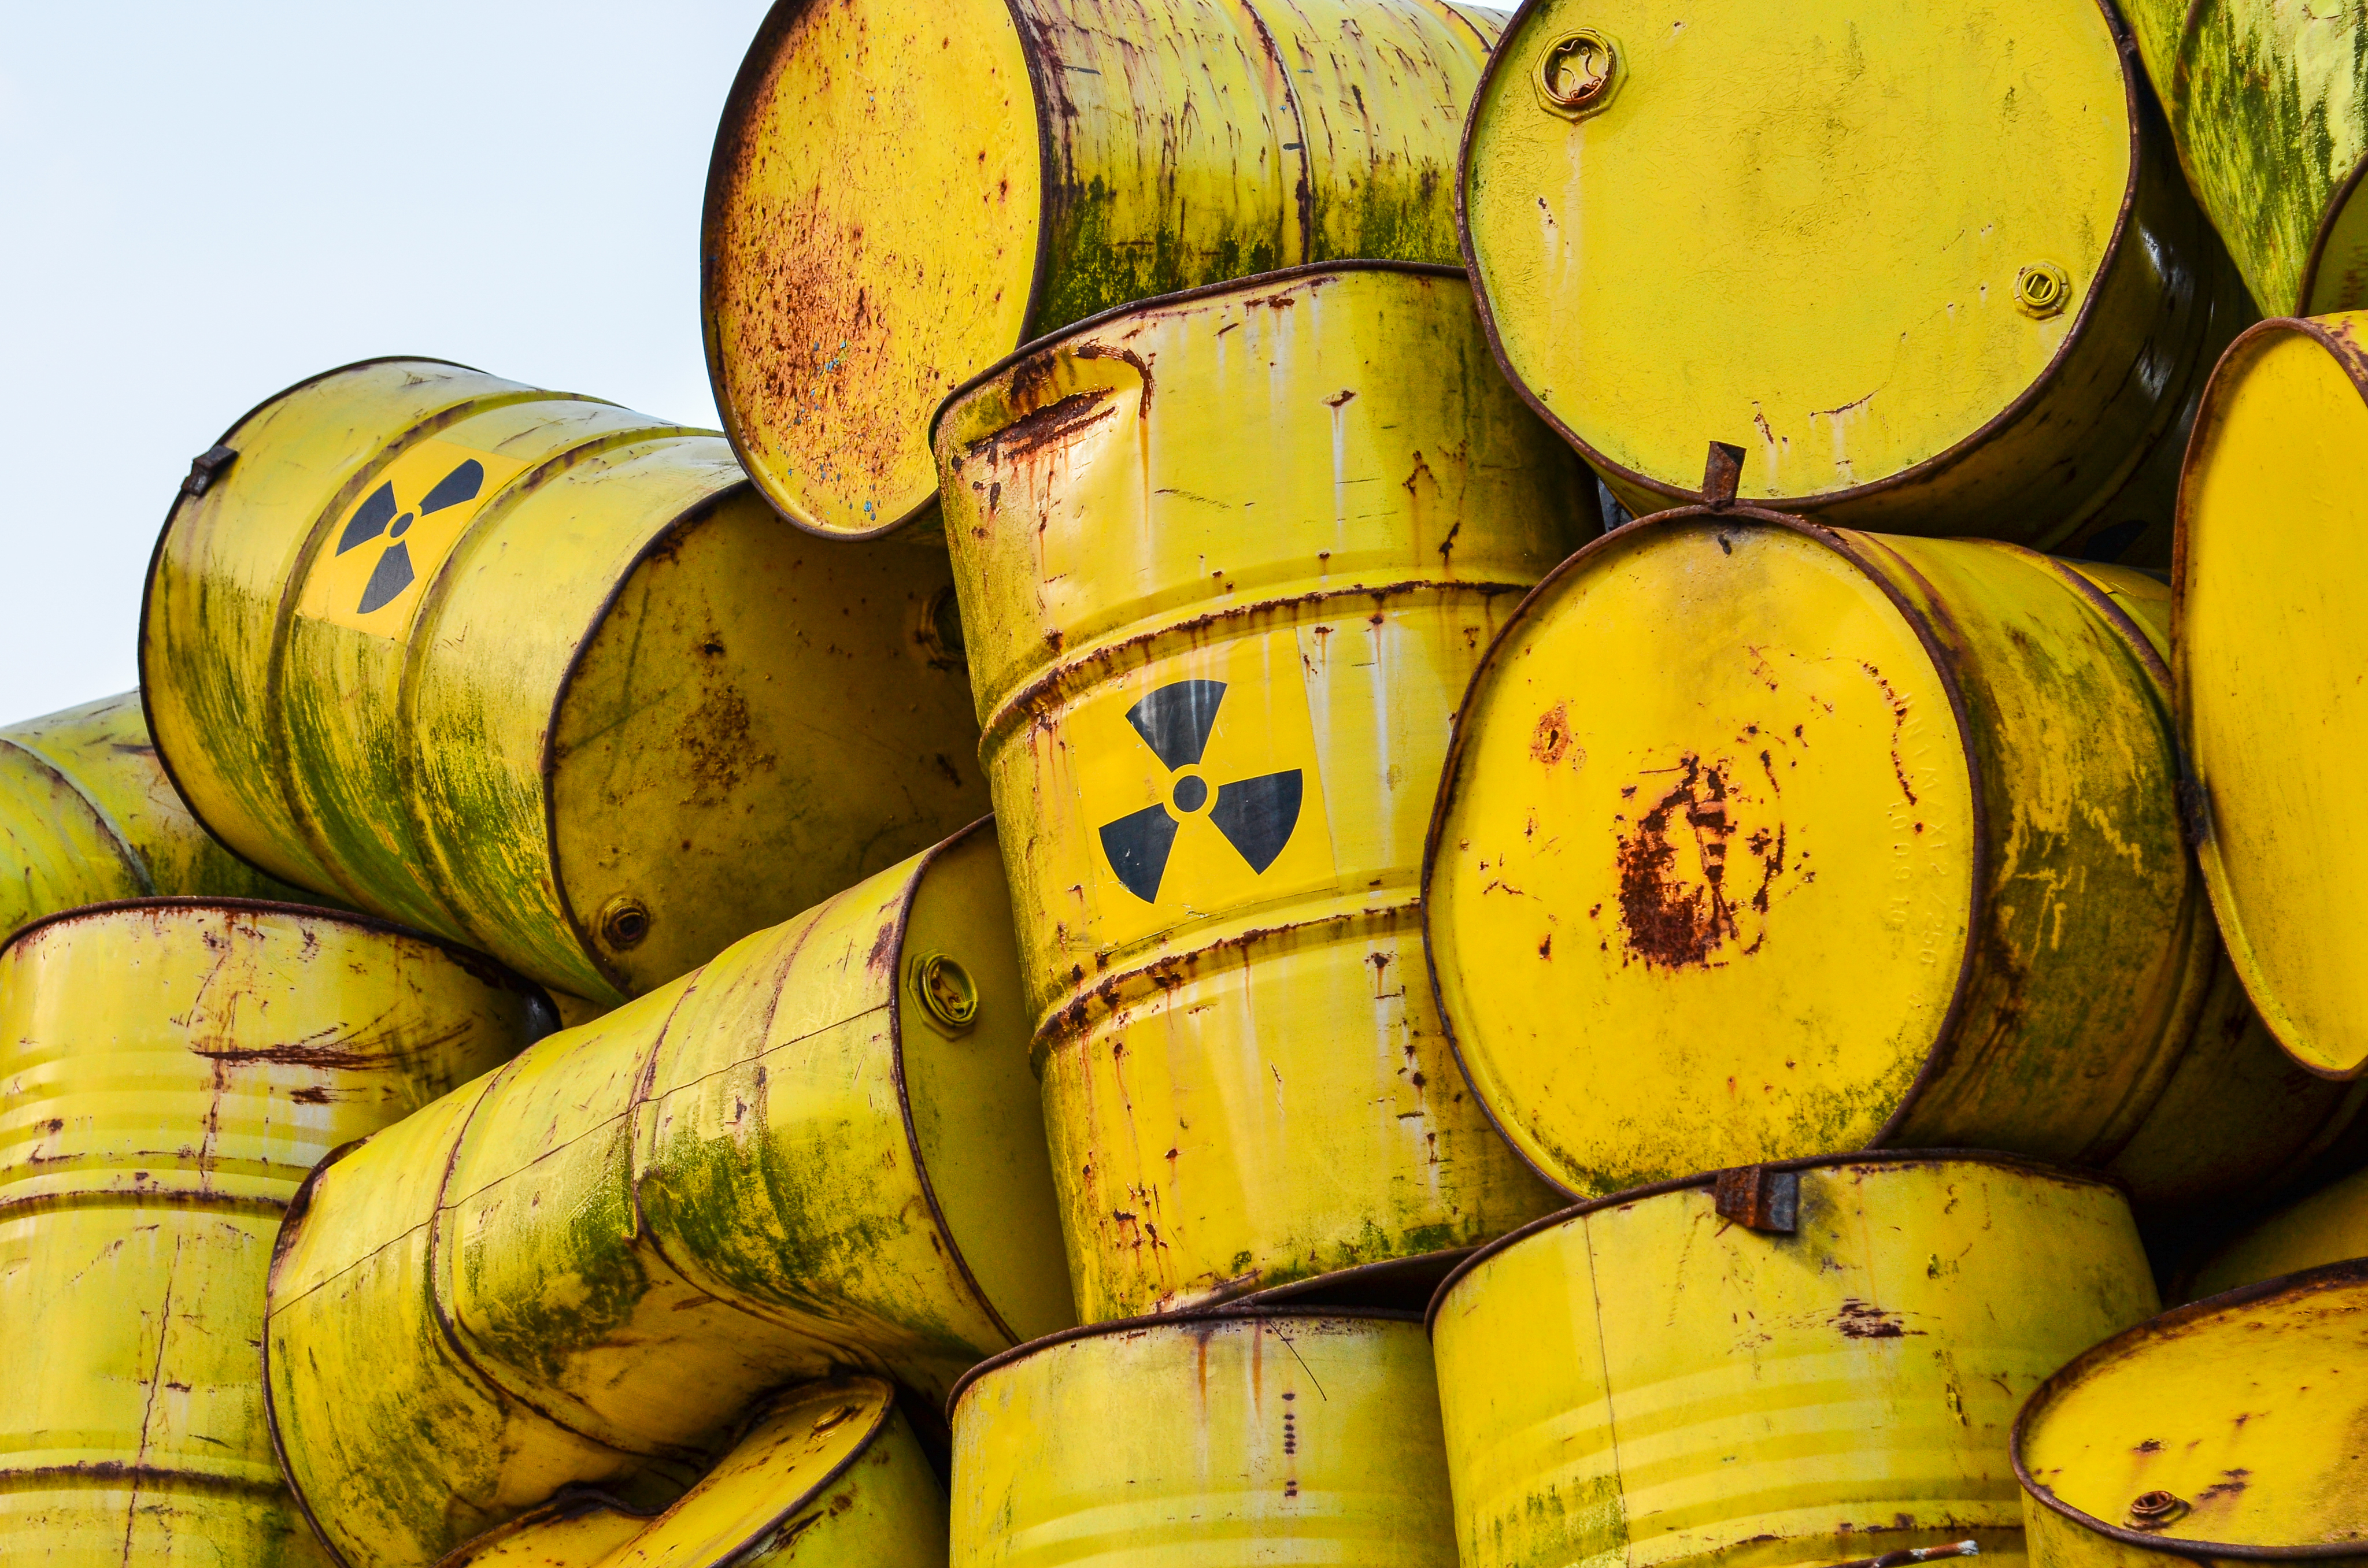 Pictured are radioactive waste barrels. SHUTTERSTOCK/Zoltan Acs